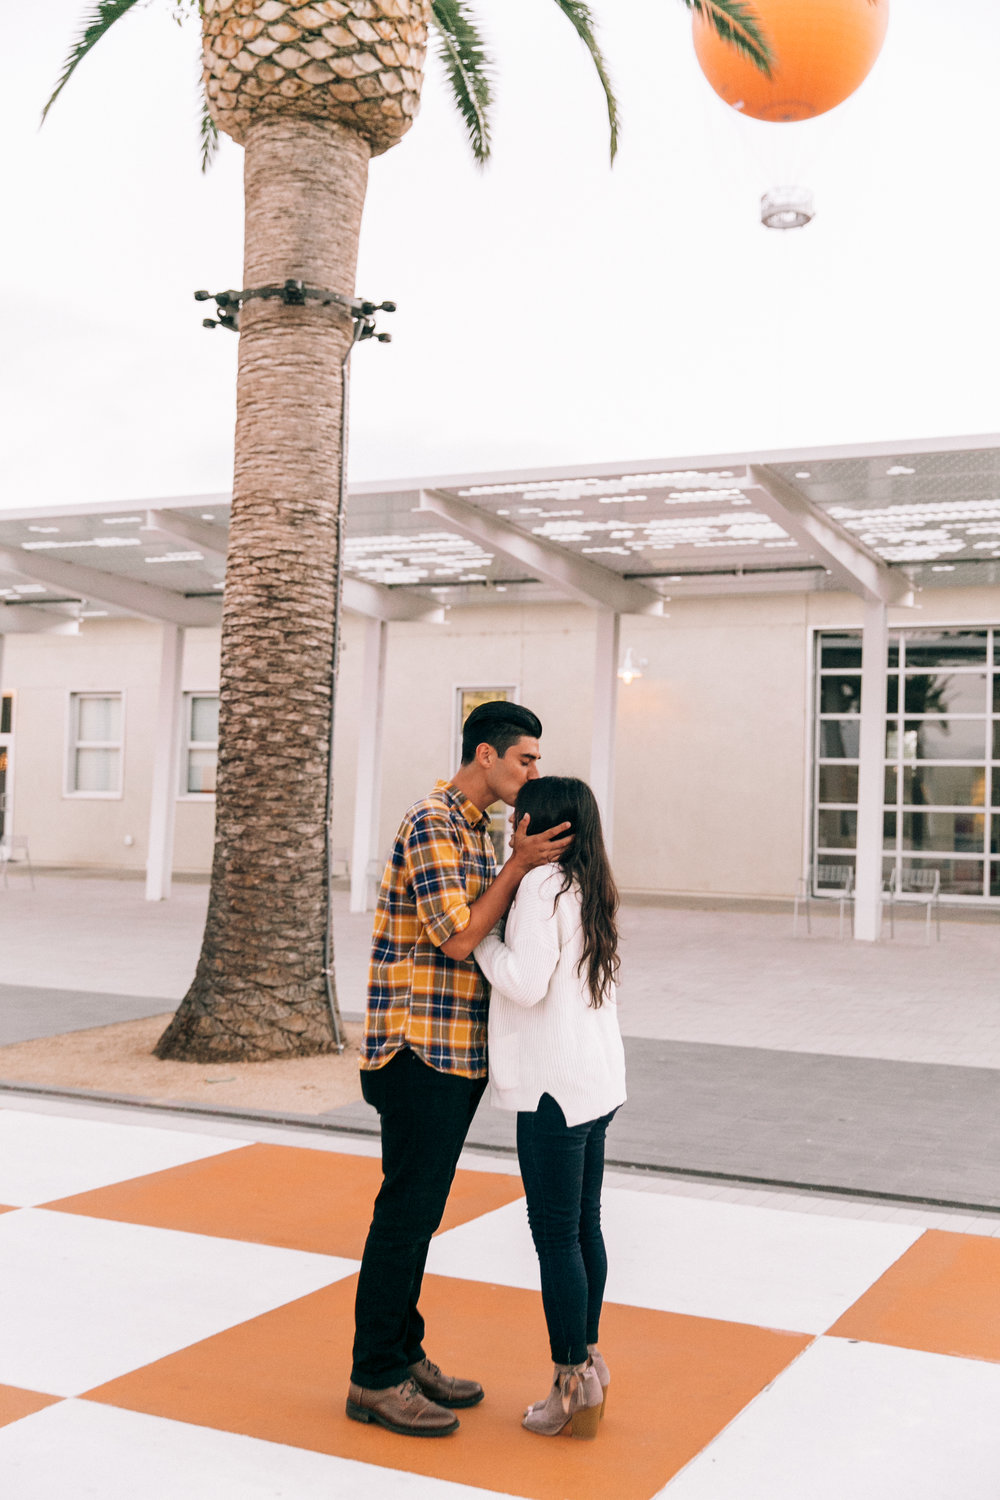 KaraNixonWeddings-Irvine-GreatPark-Proposal-31.jpg